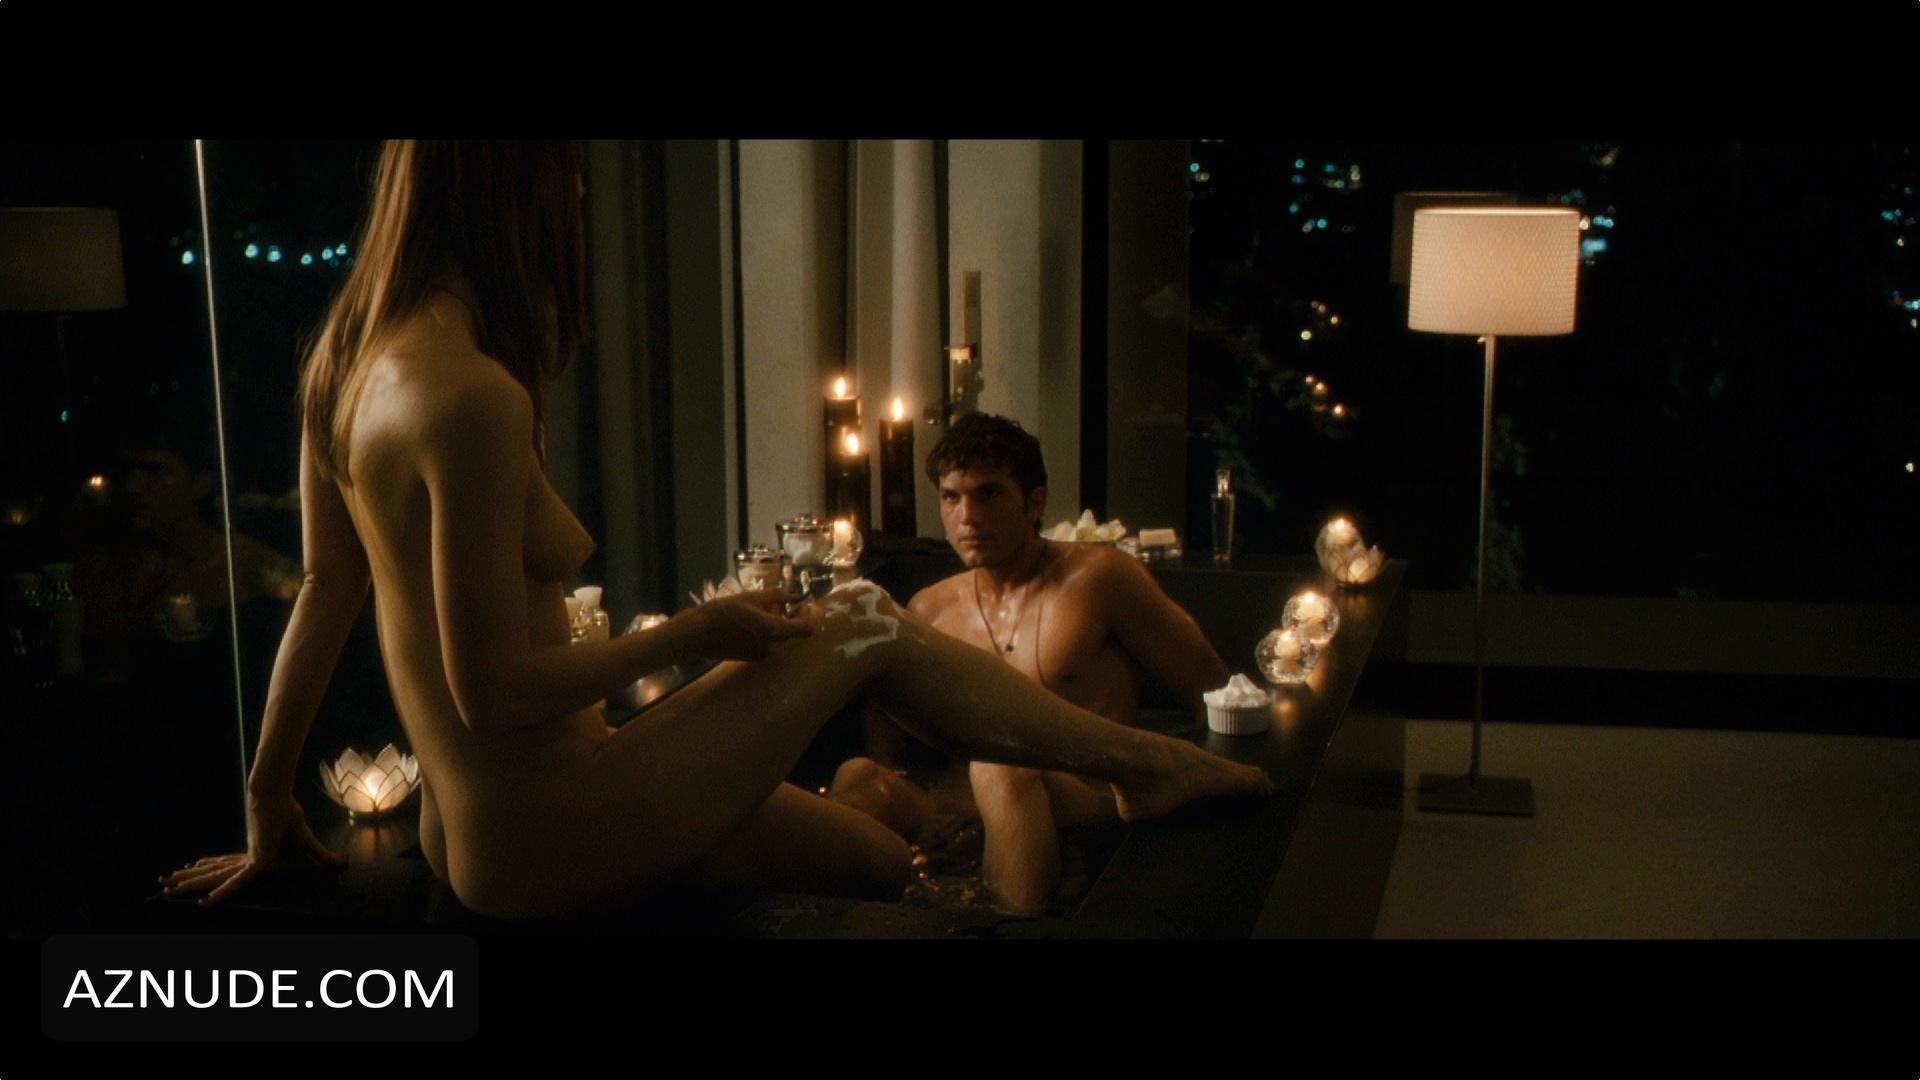 Mine the Ashton kutcher sex scene